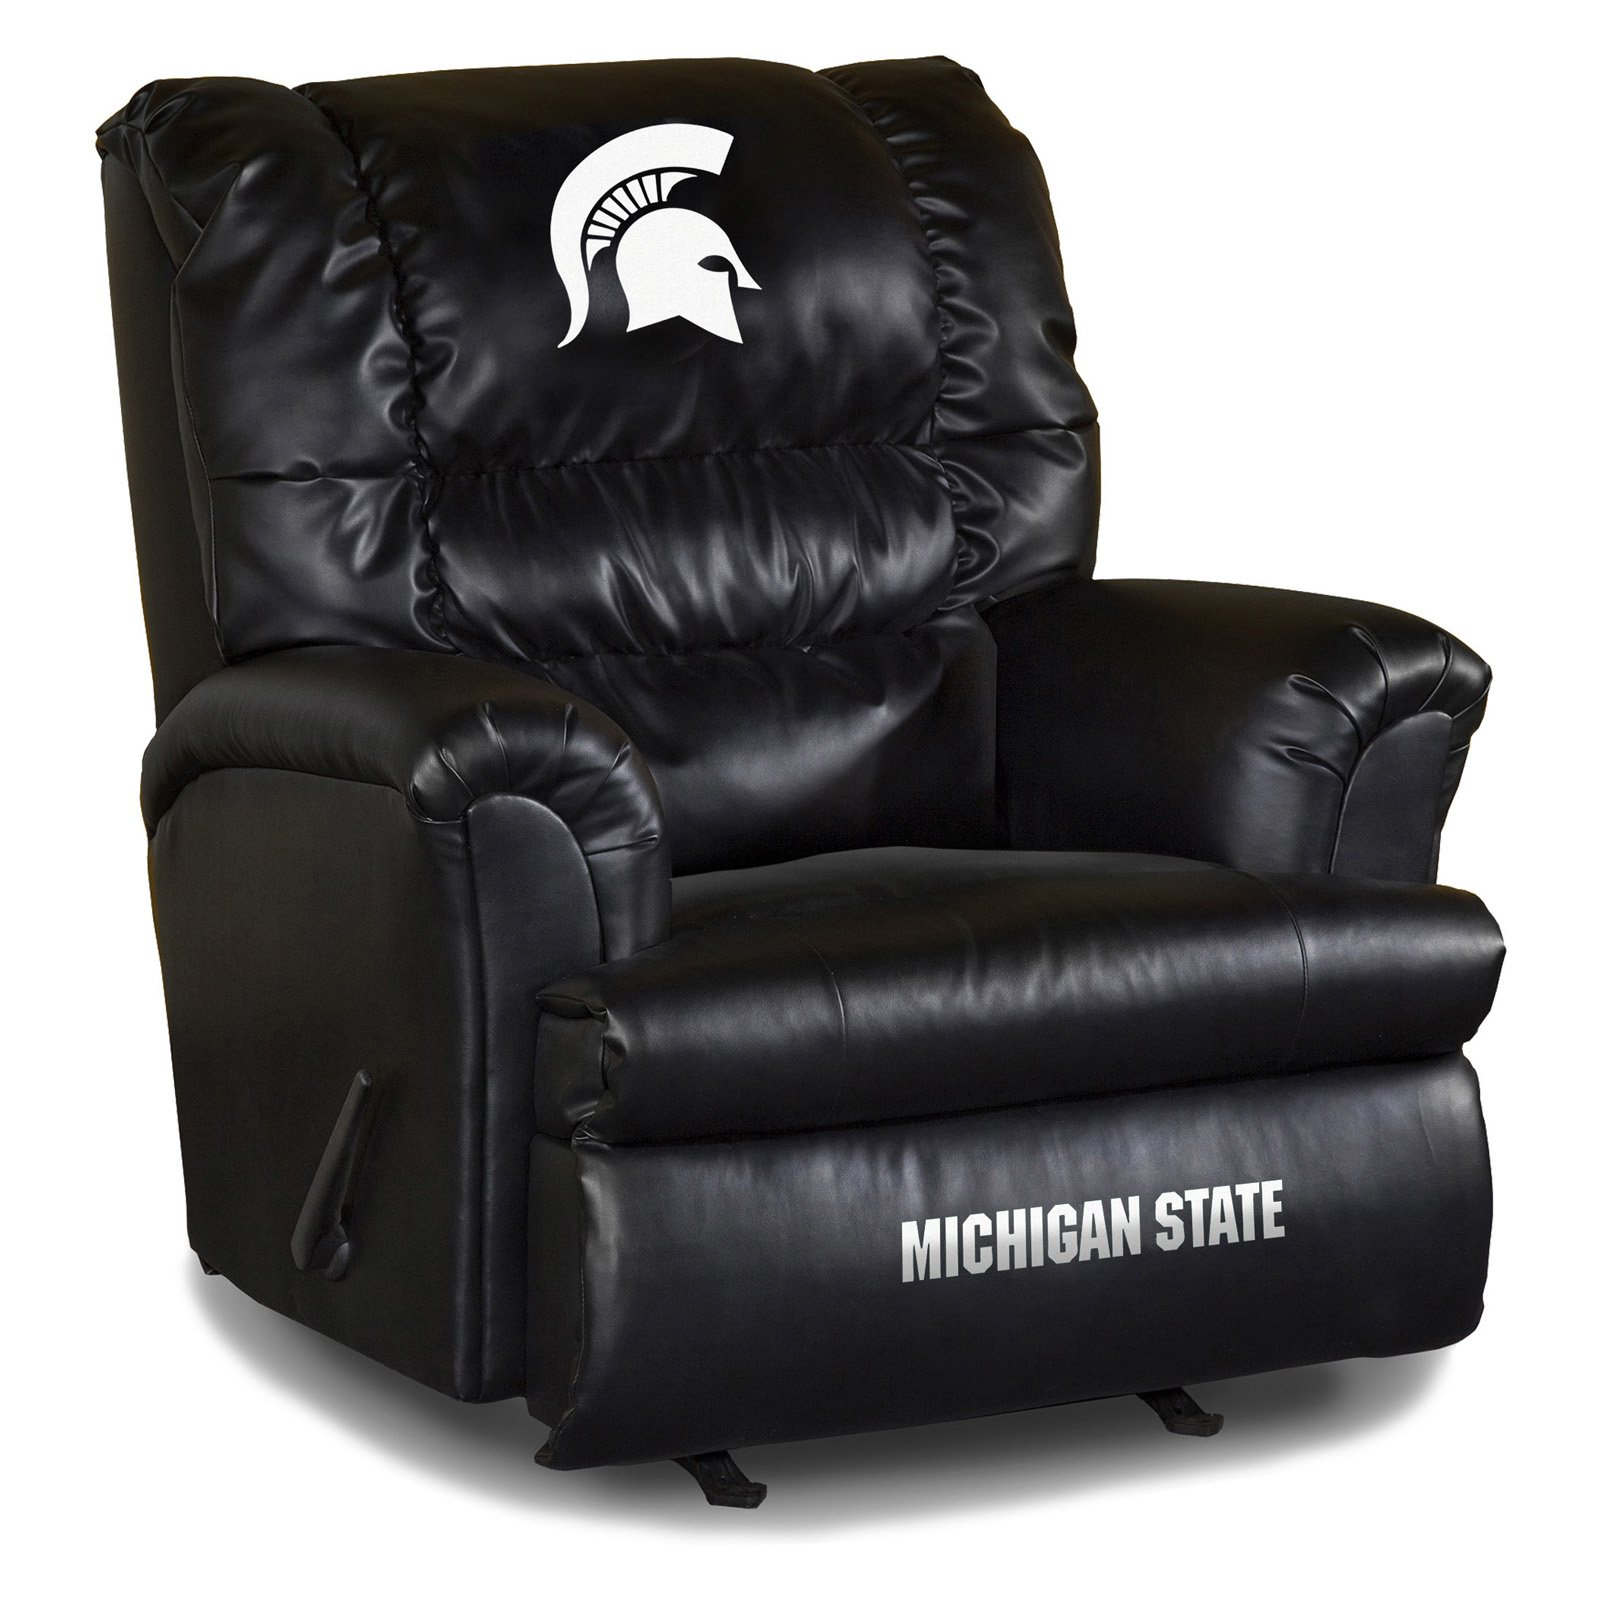 Michigan State Leather Big Daddy Recliner